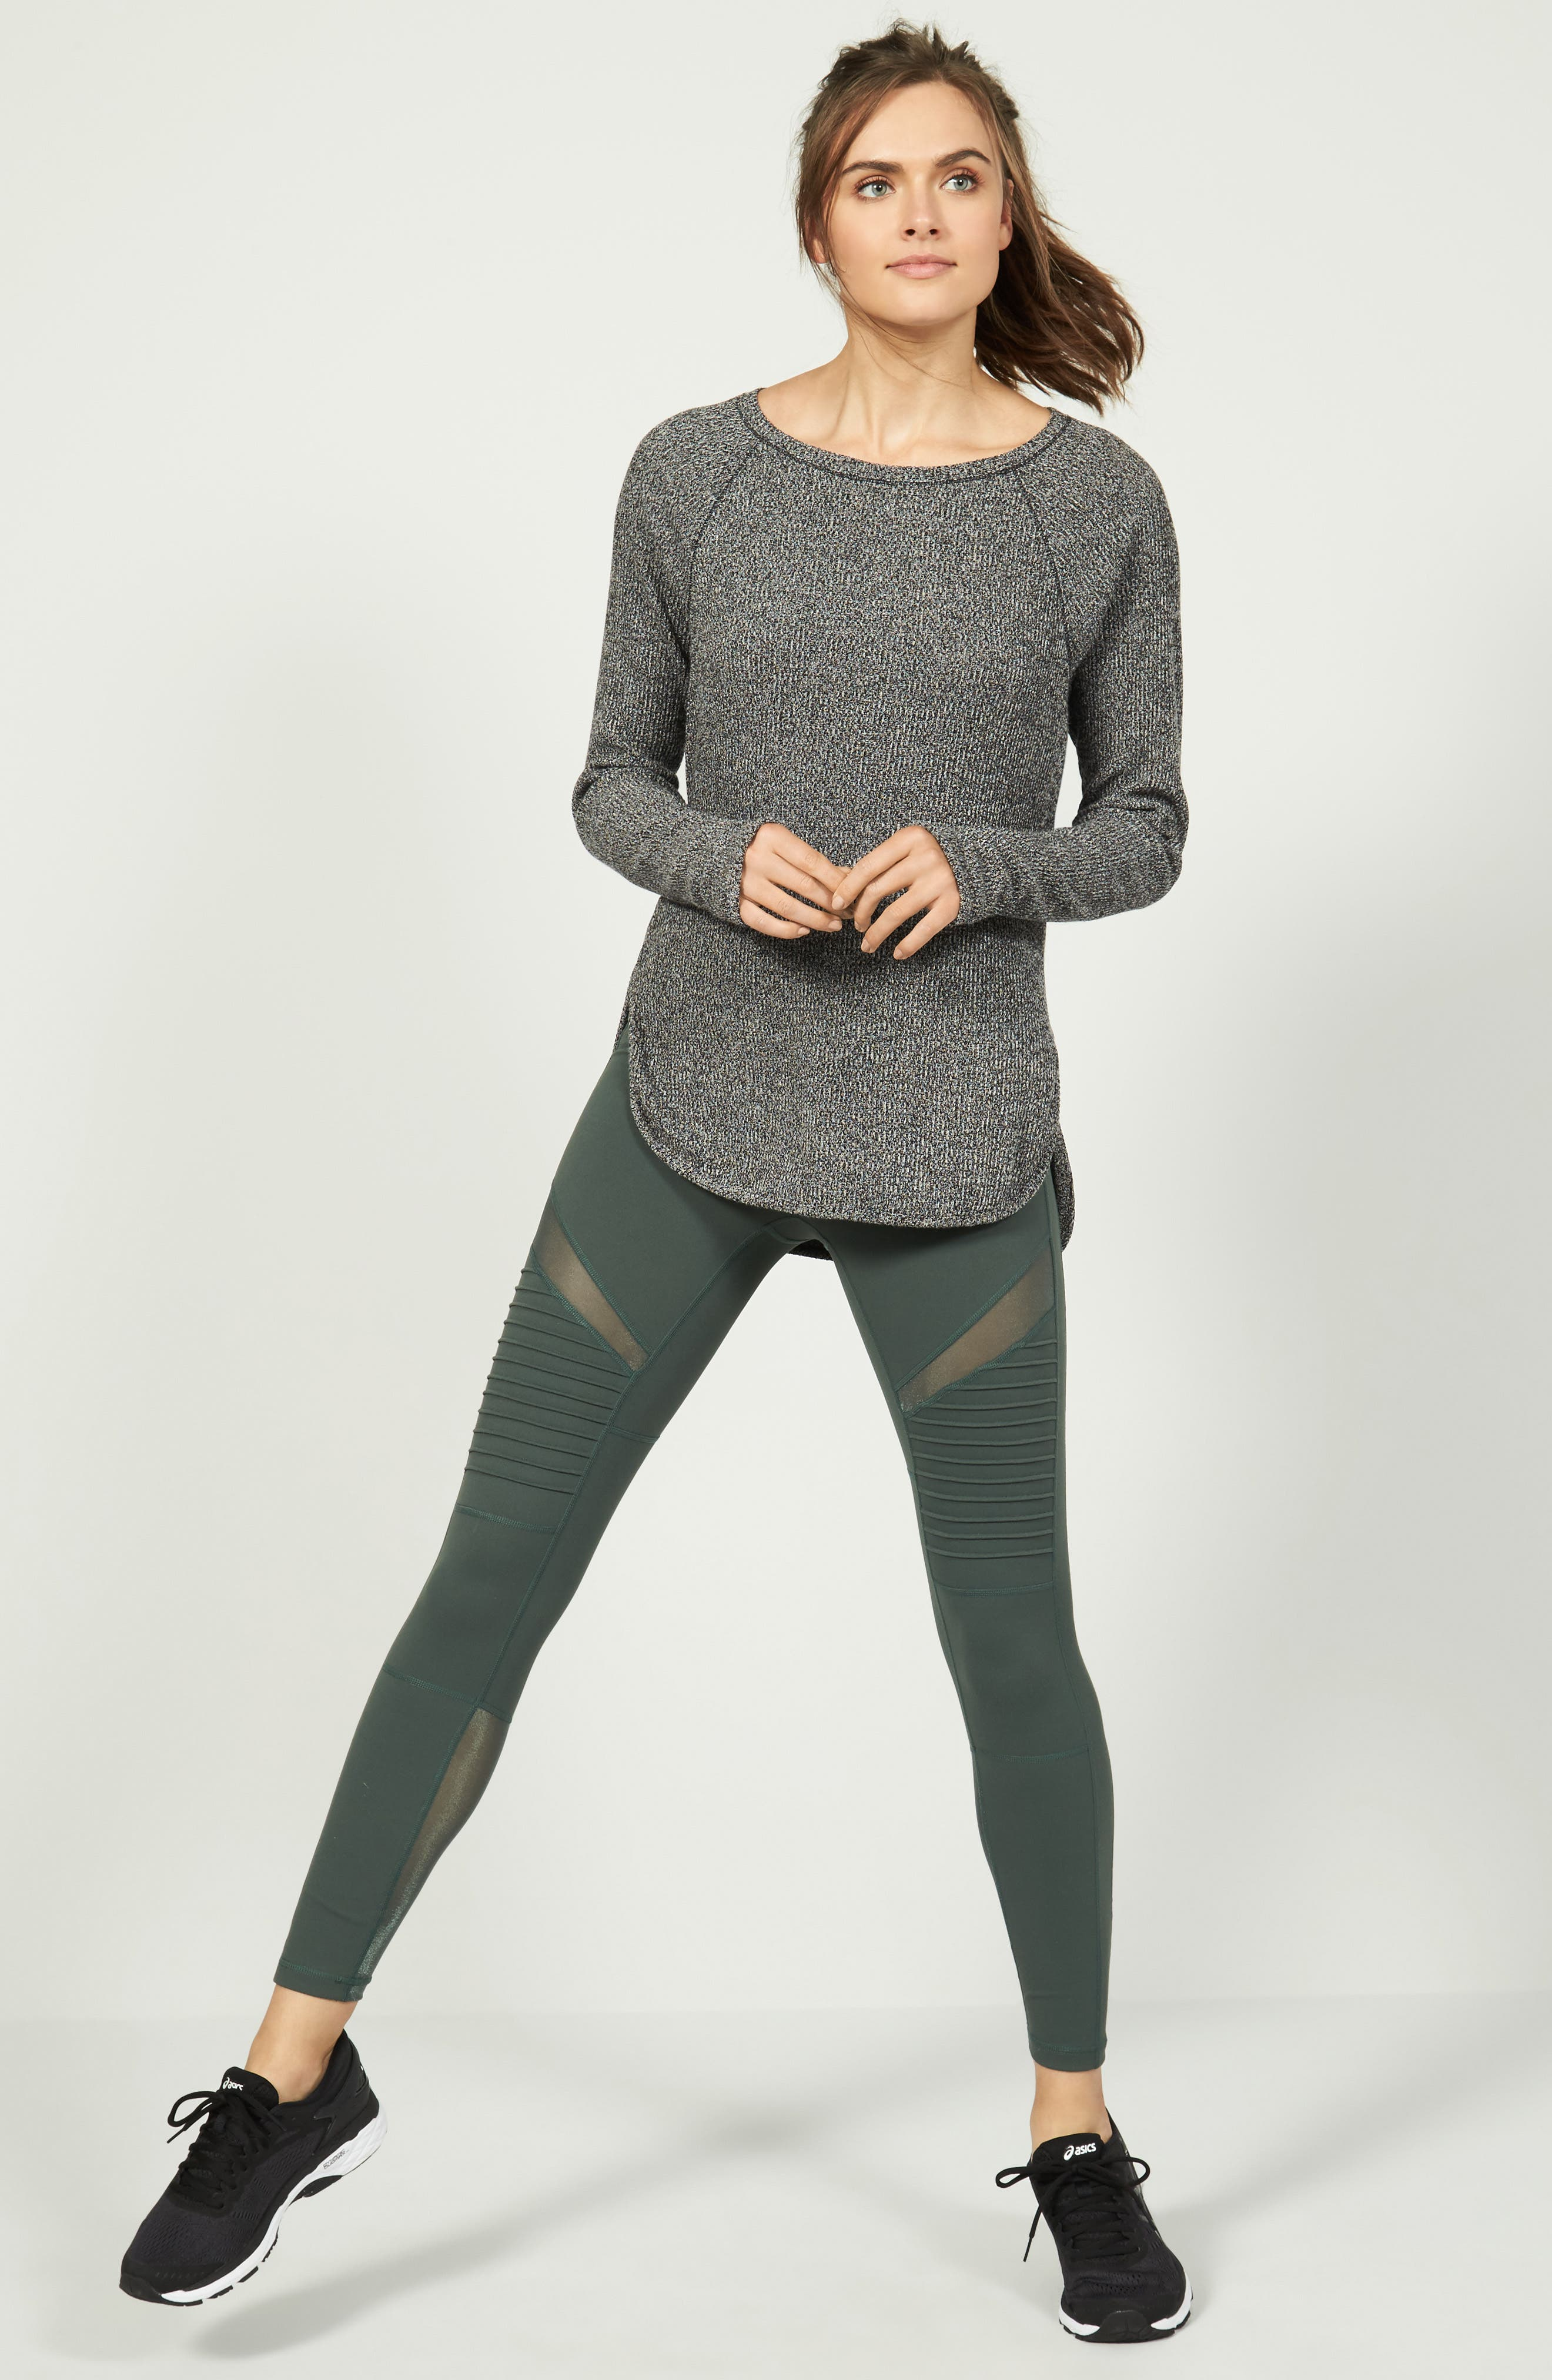 Zella Sweater & Leggings Outfit with Accessories